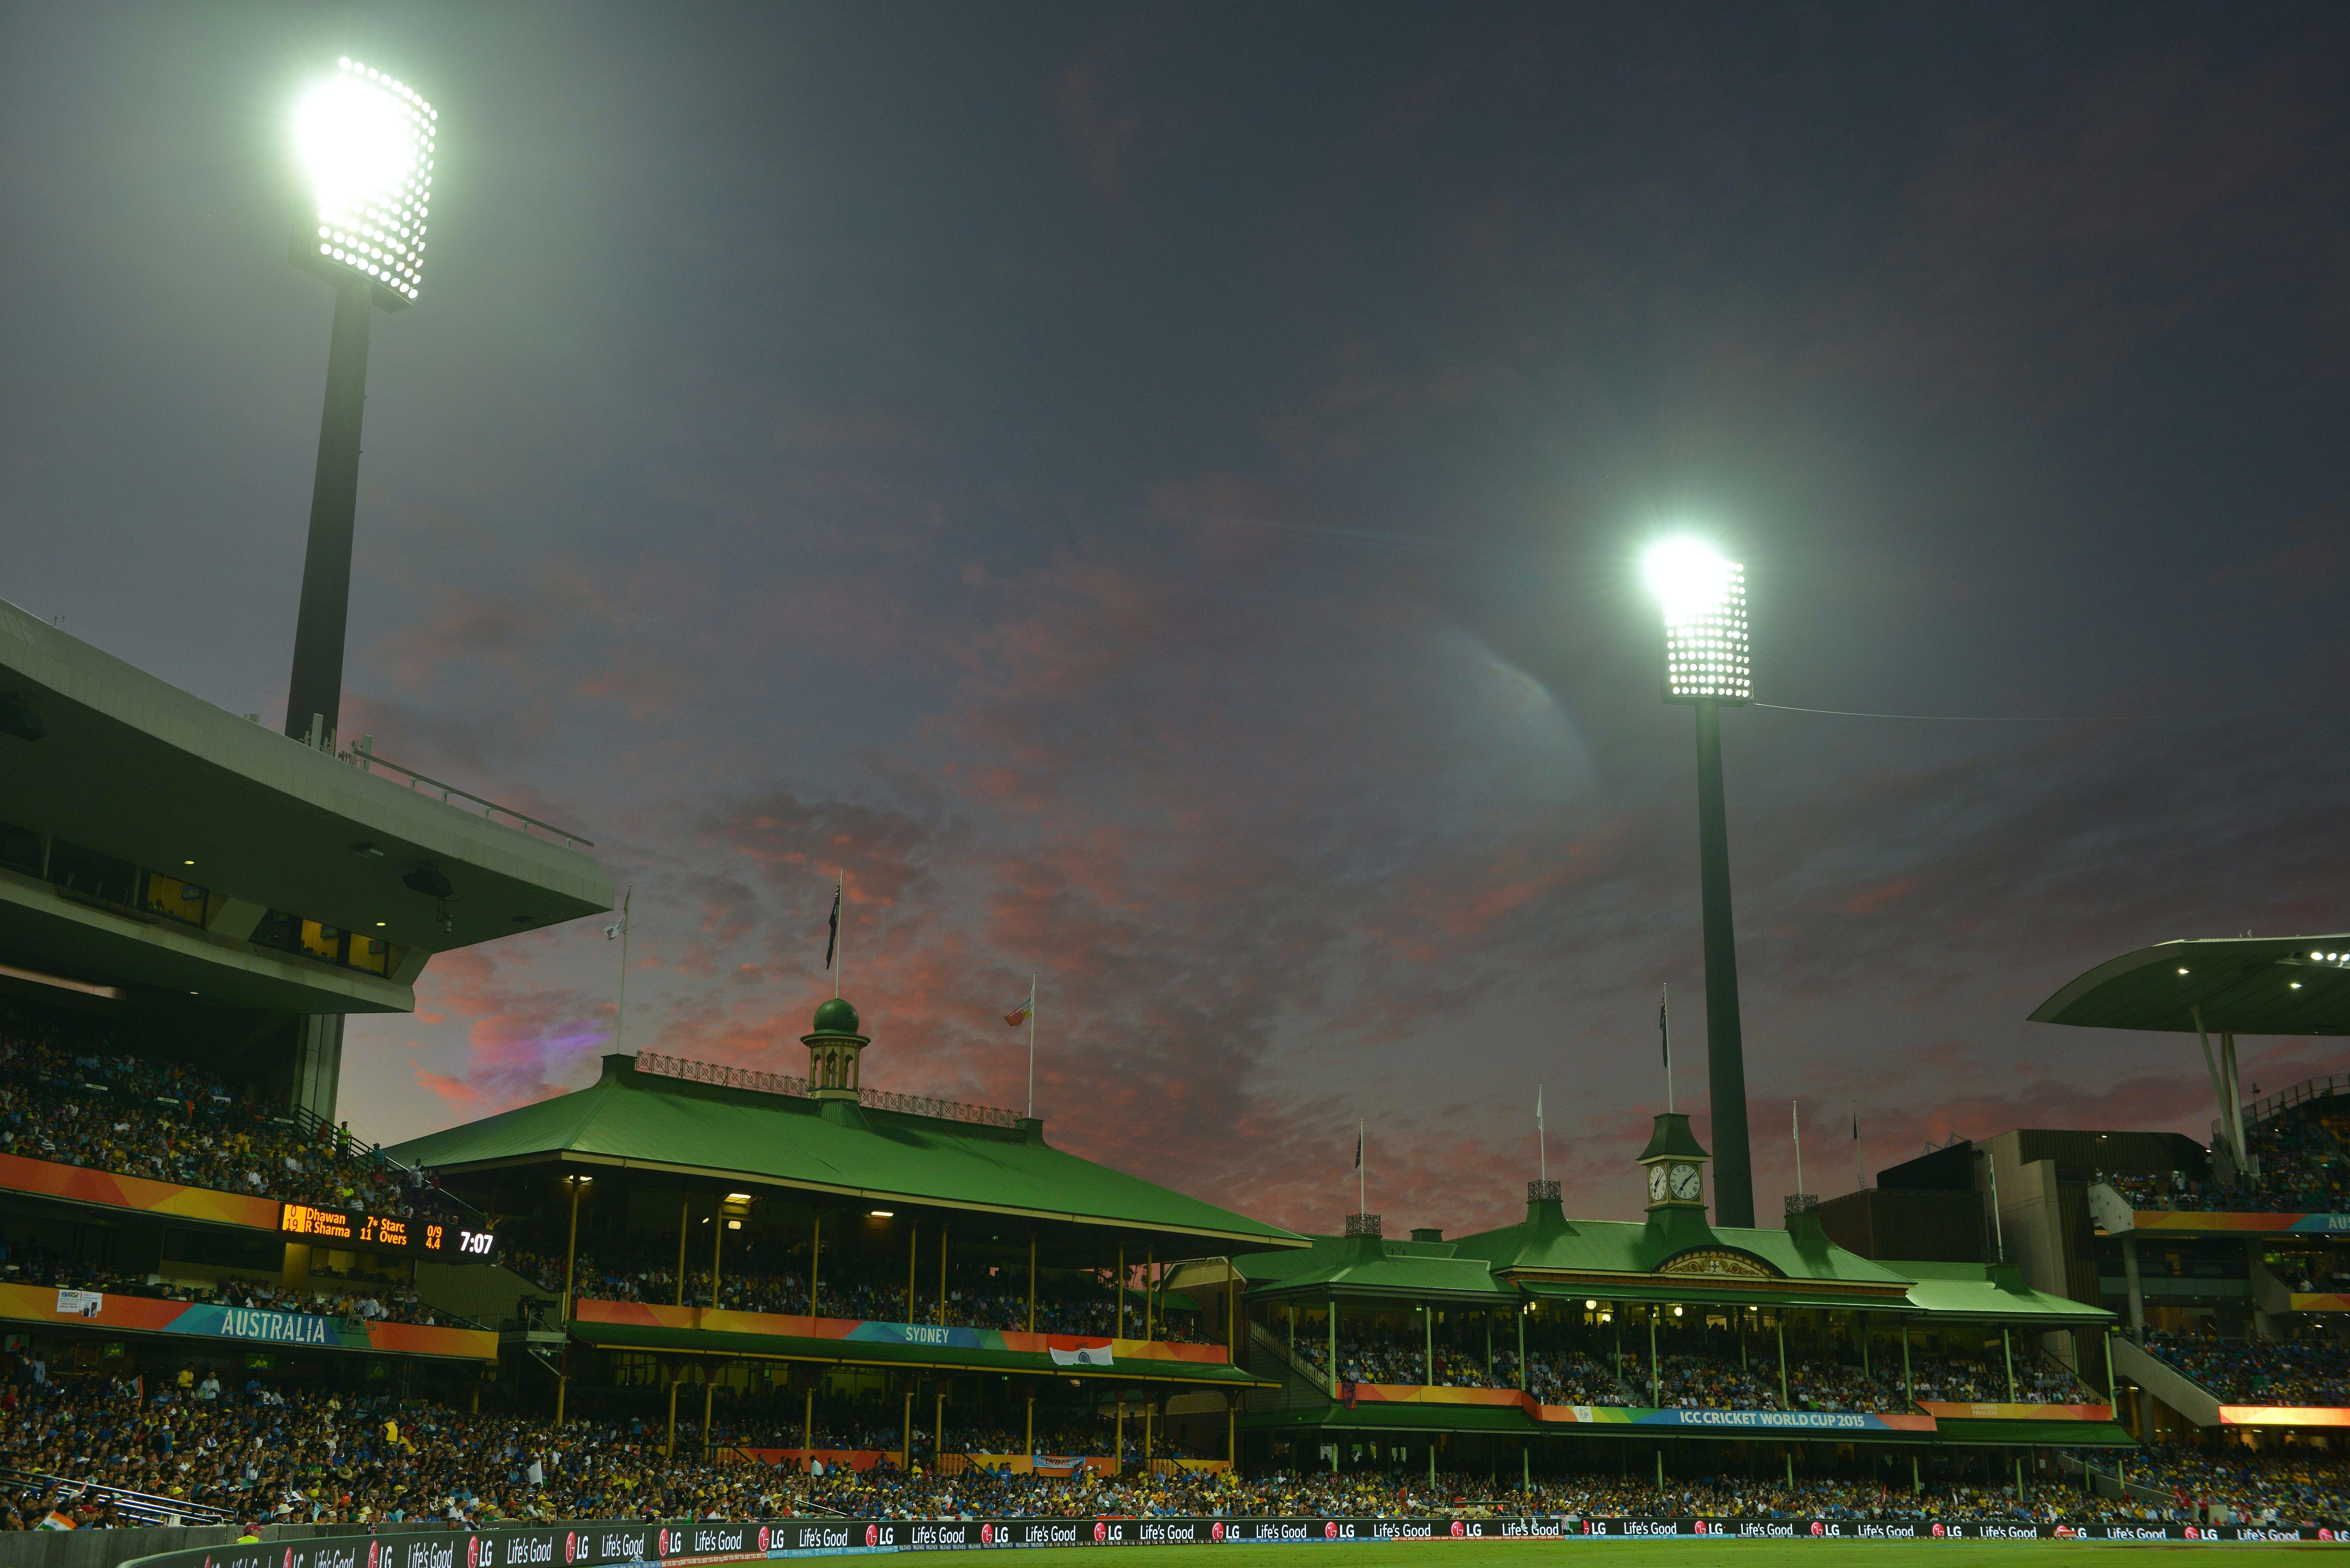 ICC T20 World Cup Australia 2020 - Newcastle Accommodation